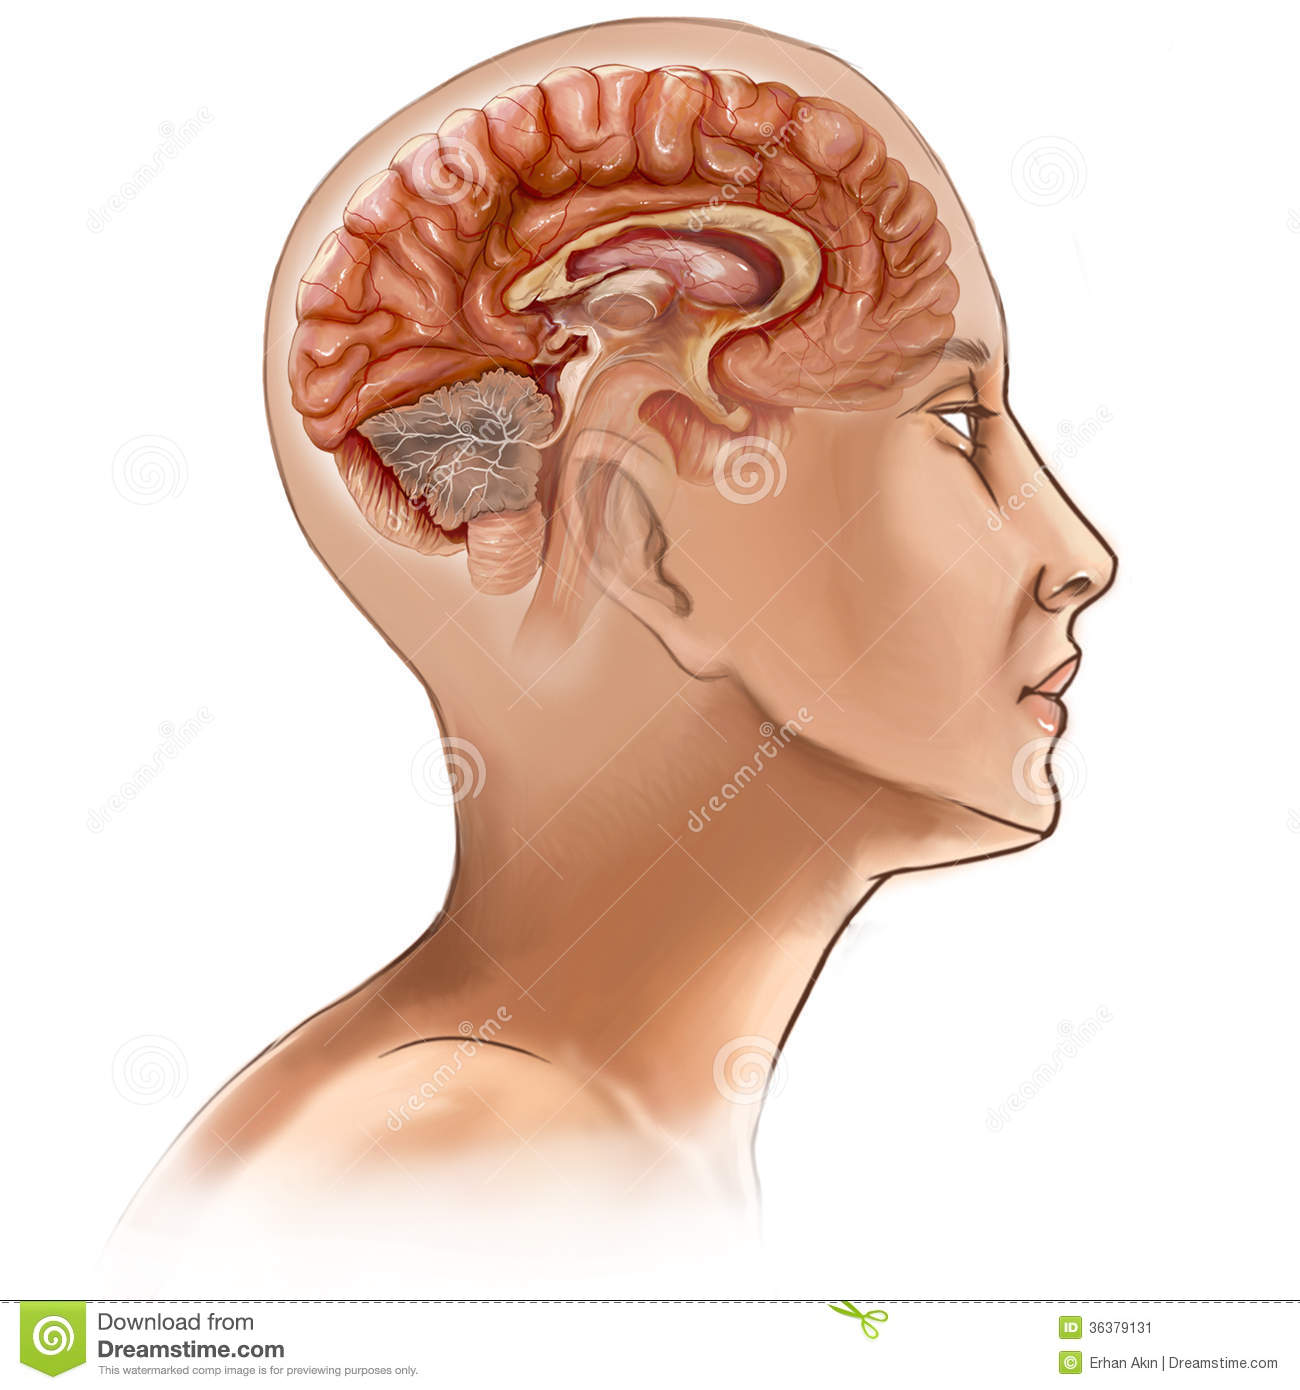 Csf Productioncirculation Absorption further Stock Image Brain Sectional Drawing Person Image36379131 further Royalty Free Stock Image Male Human Circulatory System Blood Circulation White Background Part Medical Series Image32493676 as well Hydroxycut Hardcore Next Gen Muscletech 96434 moreover Seizure Ppt Etc. on brain and circulatory